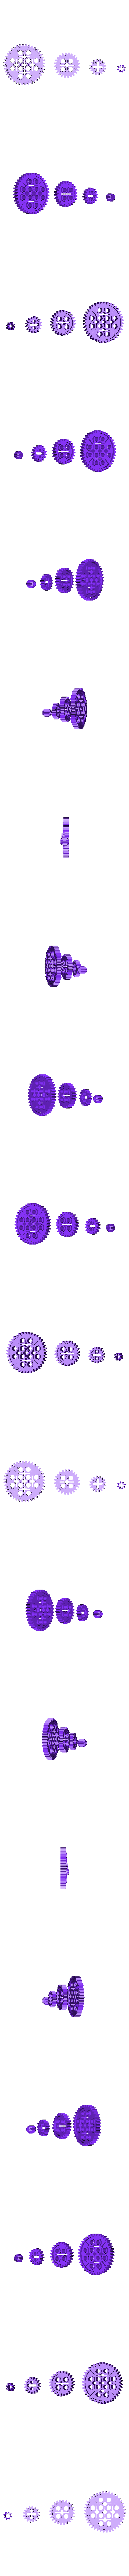 bb408GearSet.stl Download free STL file Common Gear set • 3D printer object, Lassaalk